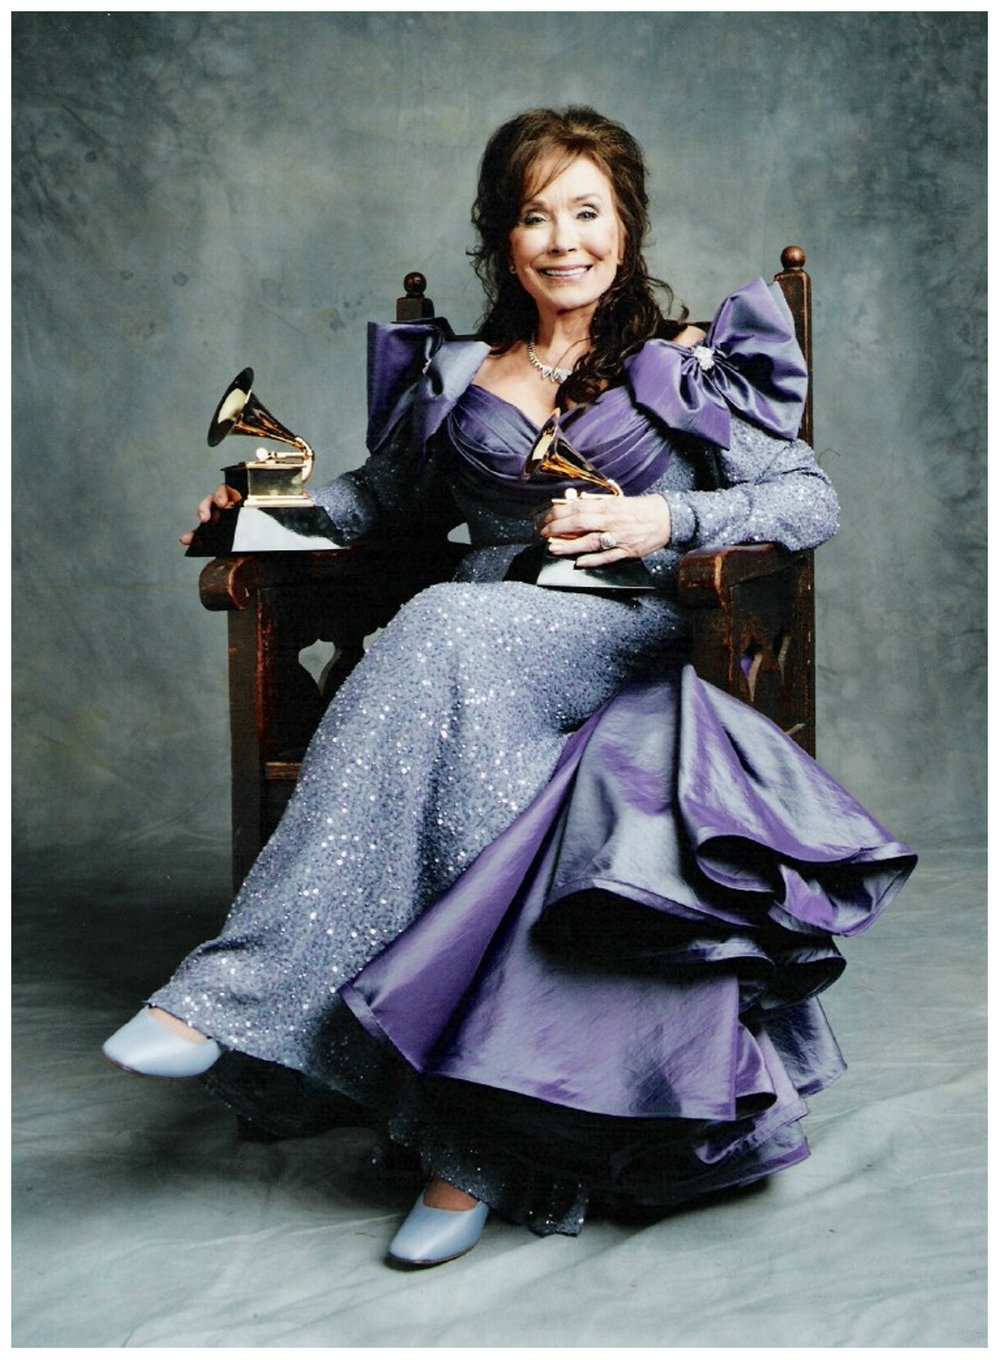 Loretta Lynn giving royal pose with her awards